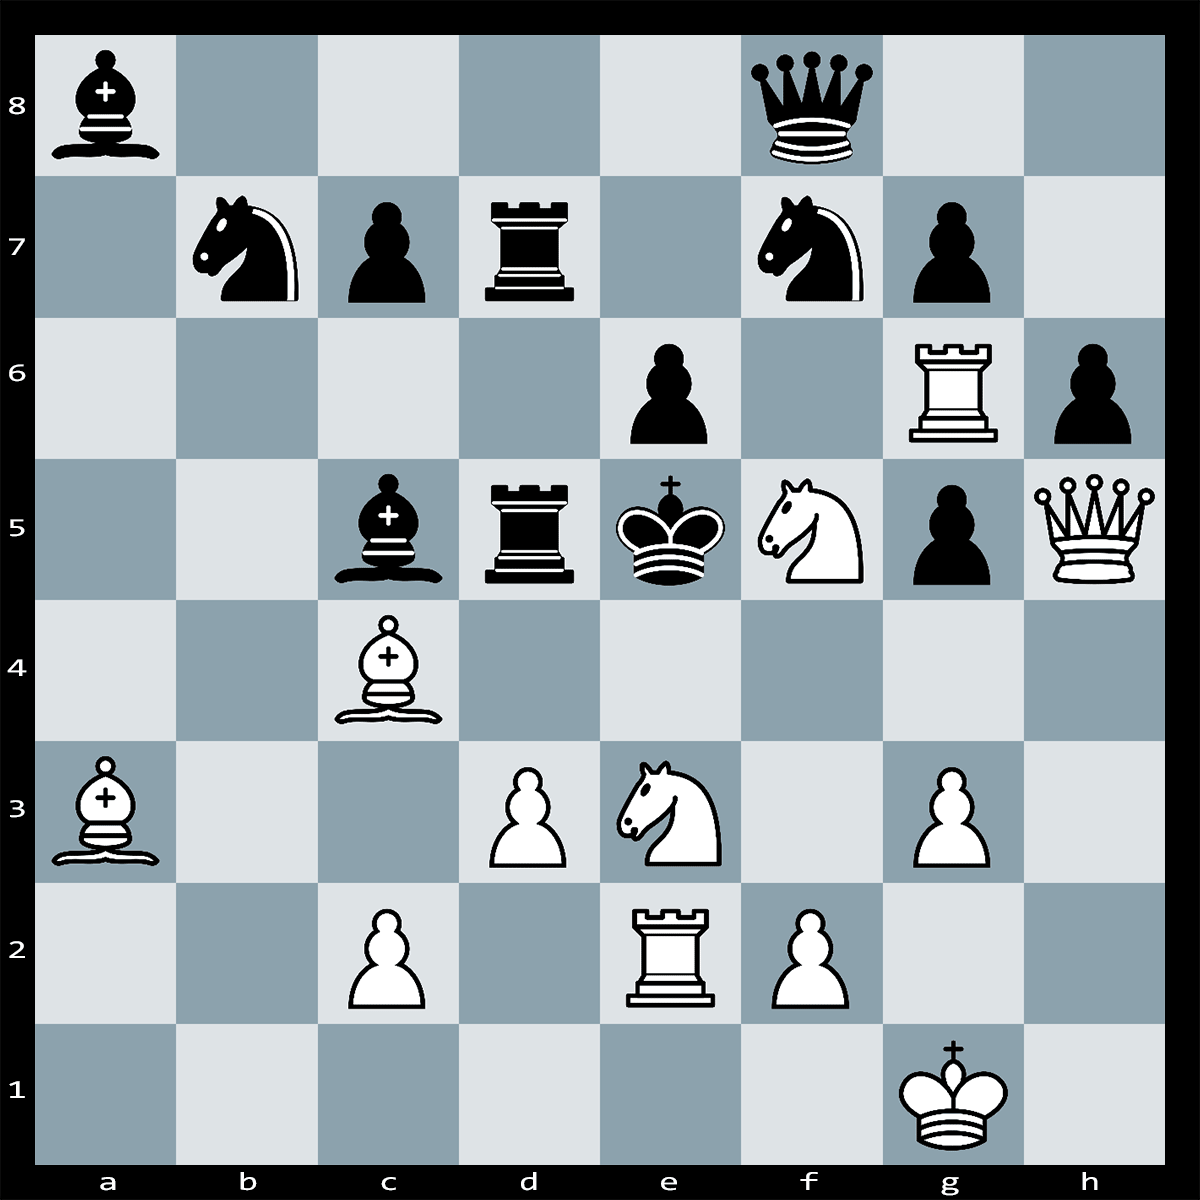 Mate in Two Moves, White to Play - Chess Puzzle #39